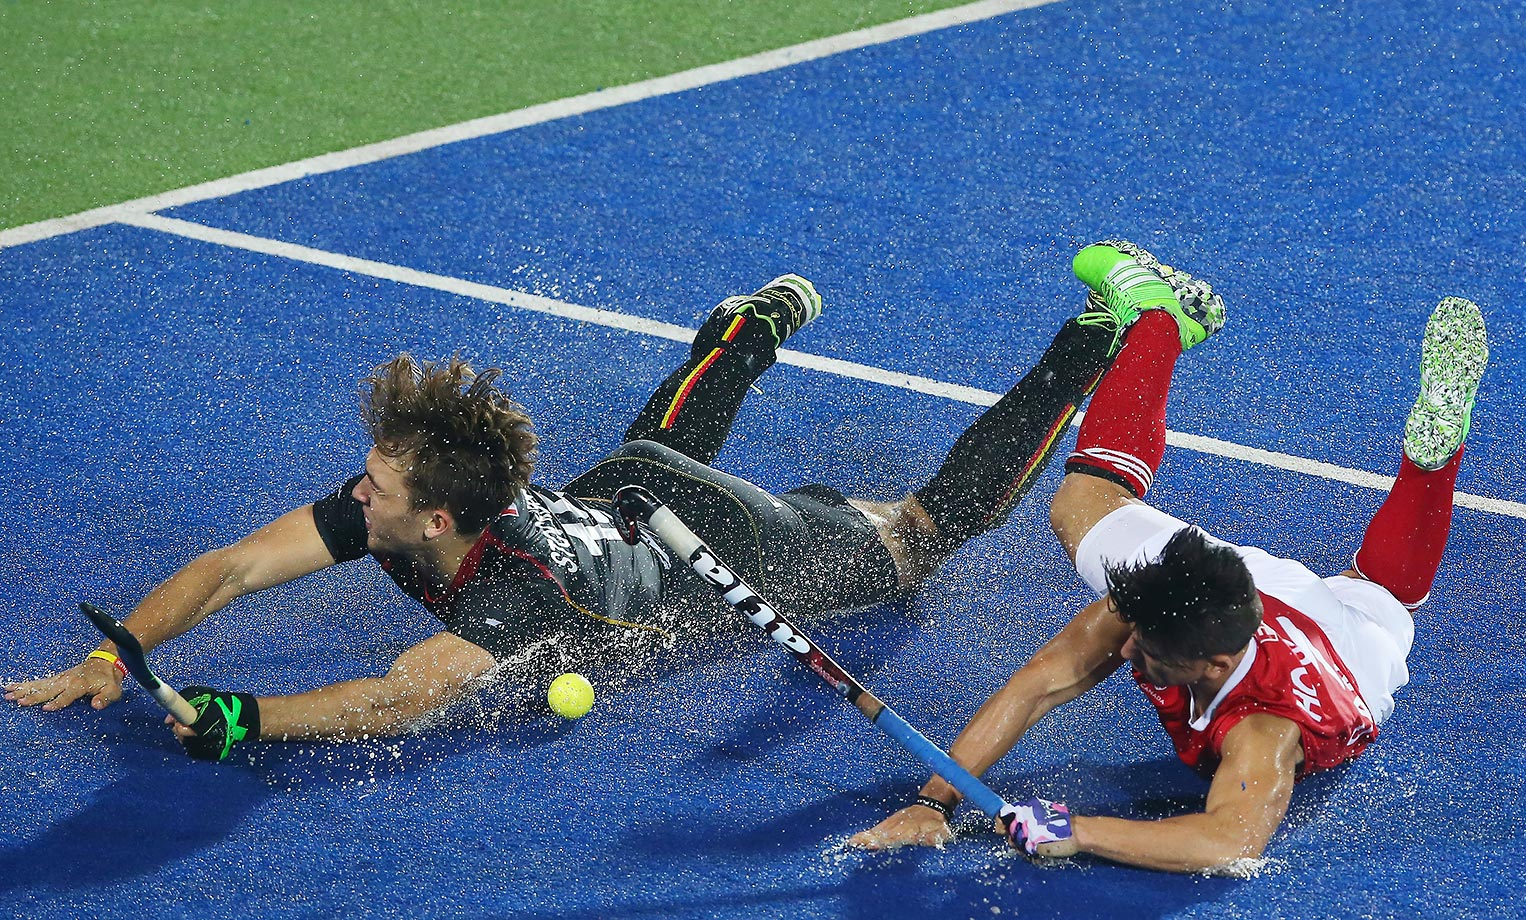 Emmanuel Stockbroekx of Belgian vies with Gabriel Ho-Garcia of Canada during the Hero Hockey League World Final in India.